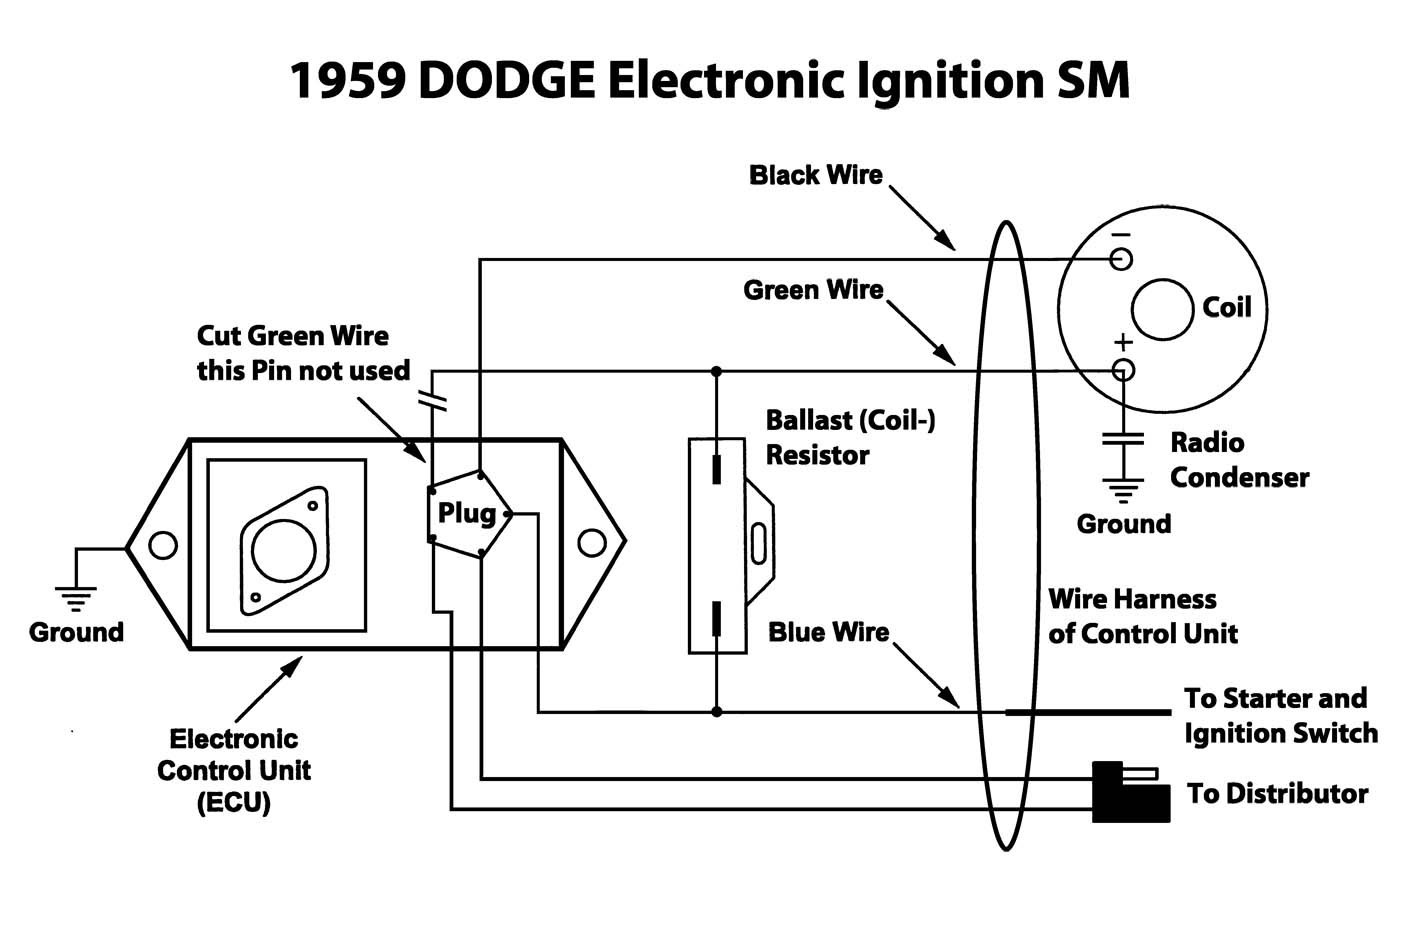 Mopar Hei Wiring Diagram Just Another Blog 71 Dodge Dart Neutral Safety Switch Ignition Diagrams Rh 15 3 Jennifer Retzke De Module Gm